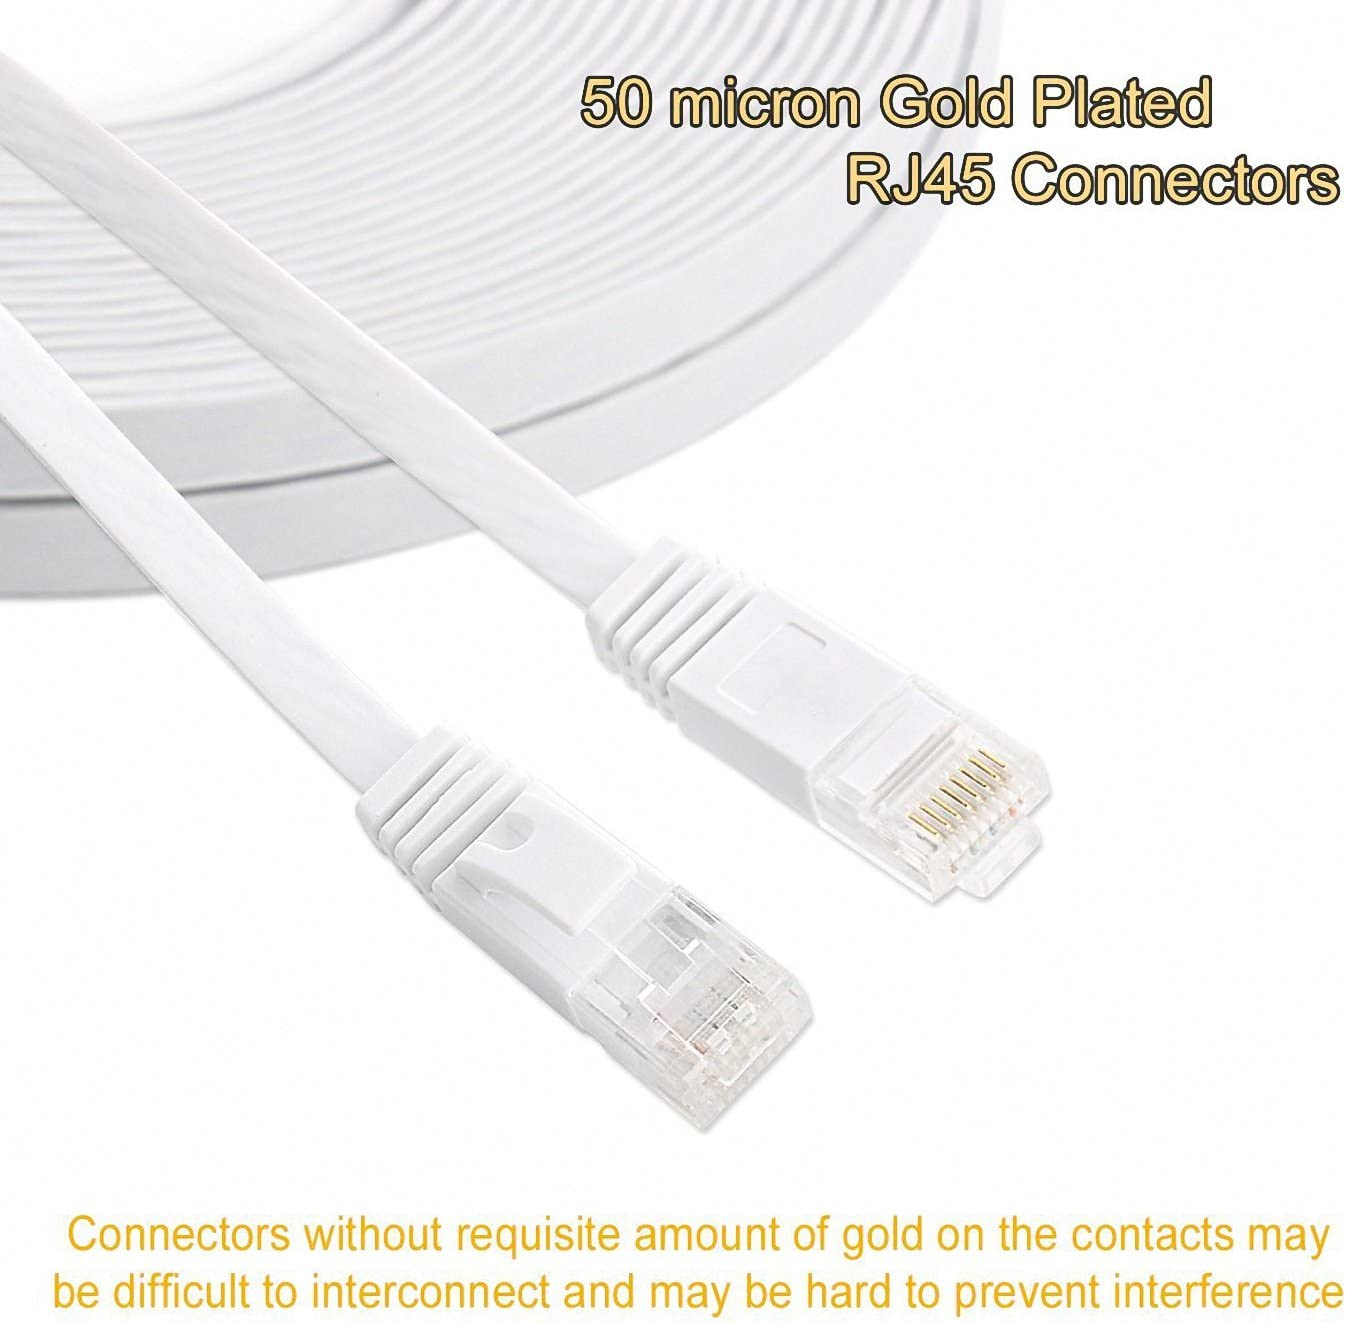 Cat 6 Ethernet Cable 200 FT Flat Internet Network Cables with Cable Clips Cat6 Ethernet Patch Cable With Snagless Rj45 Connectors White Computer Lan Cable(200FT)